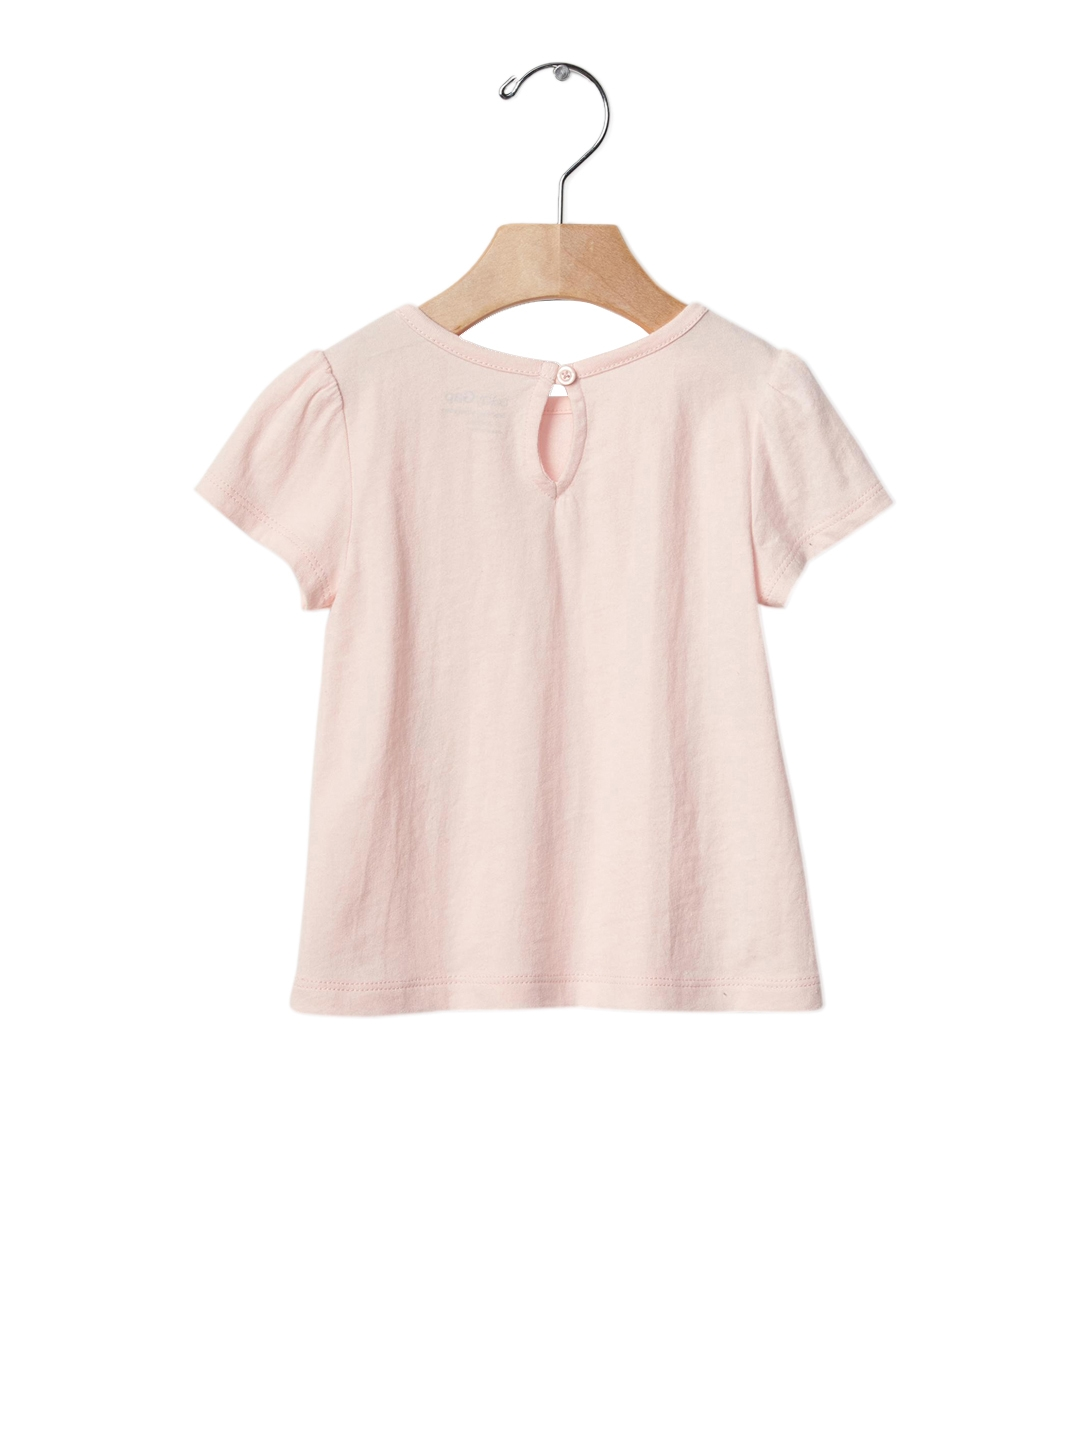 c45aa251e469 Buy GAP Girls Pink Printed Round Neck T Shirt - Tshirts for Girls ...